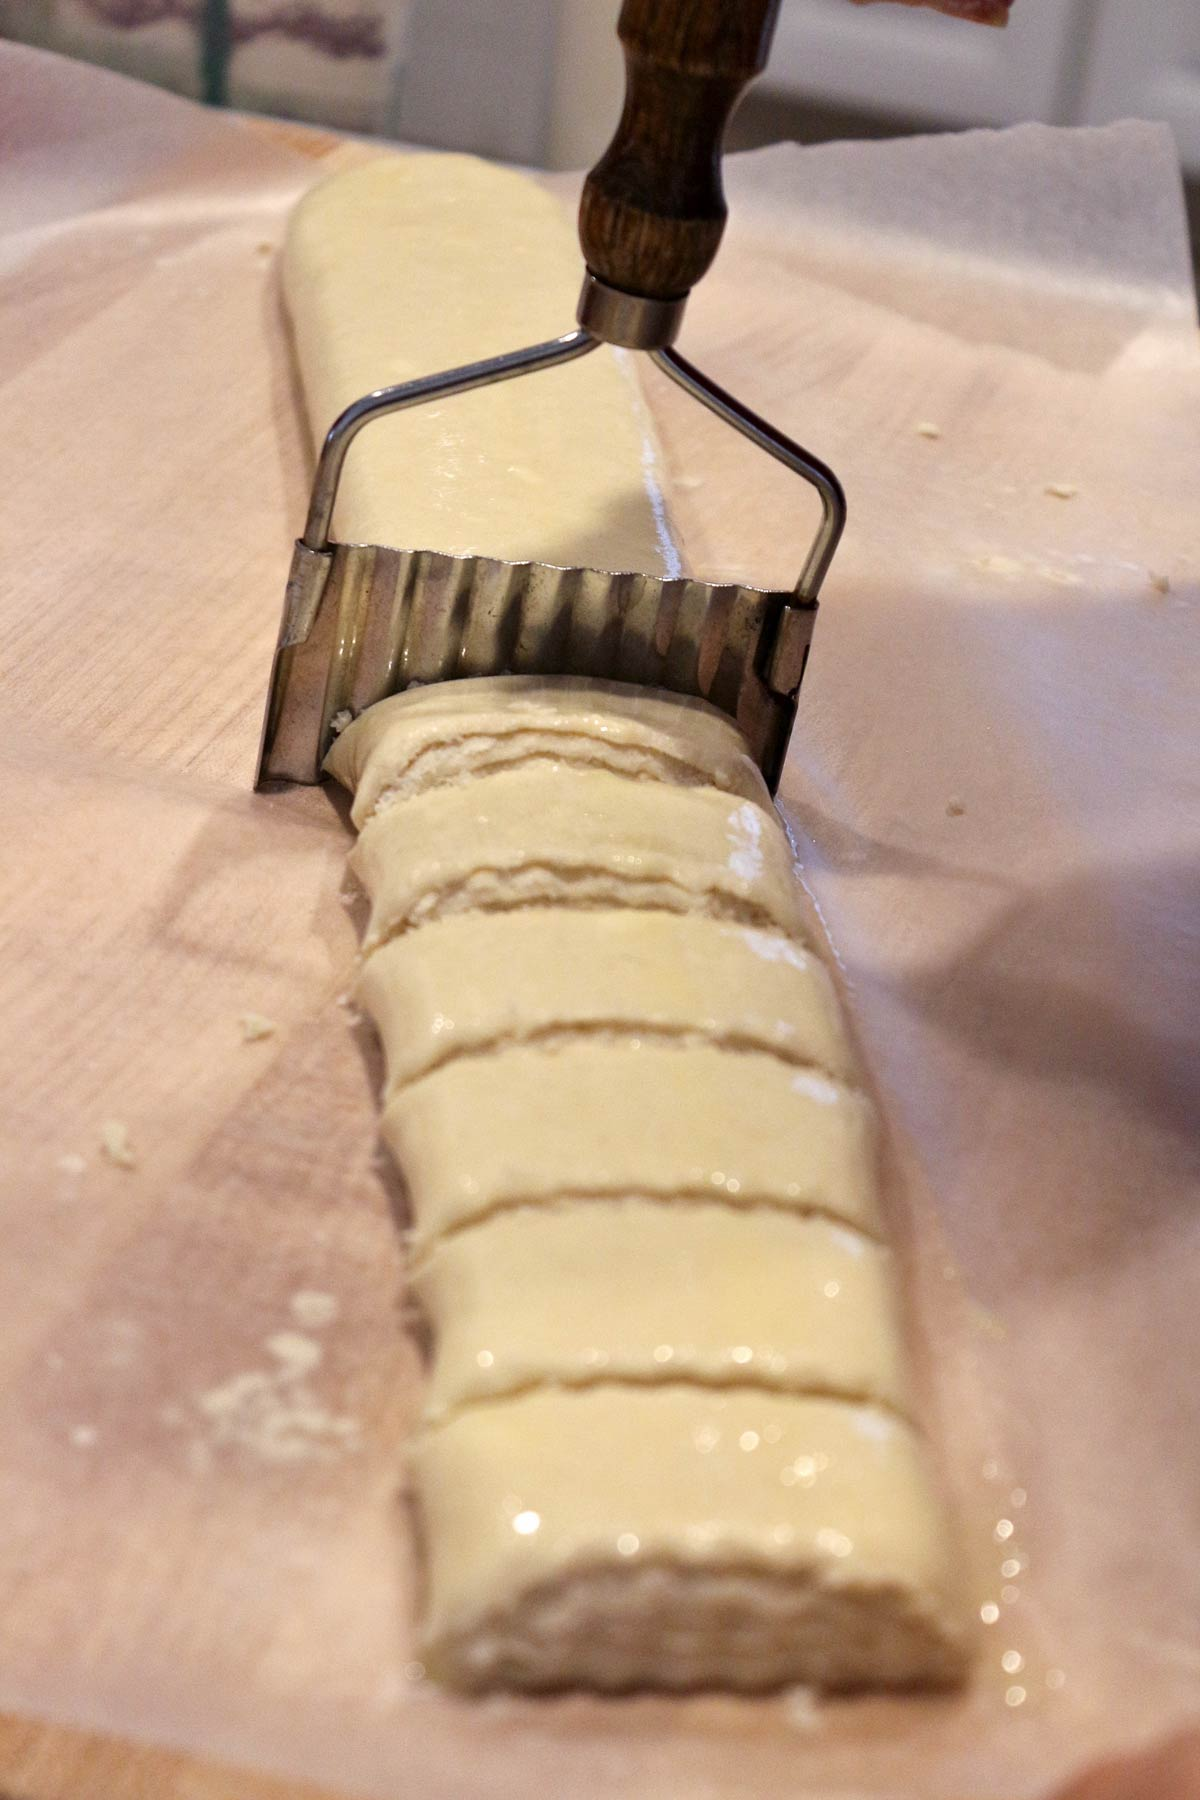 Cutting the gata roulade into individual pieces with a serrated vegetable cutter.